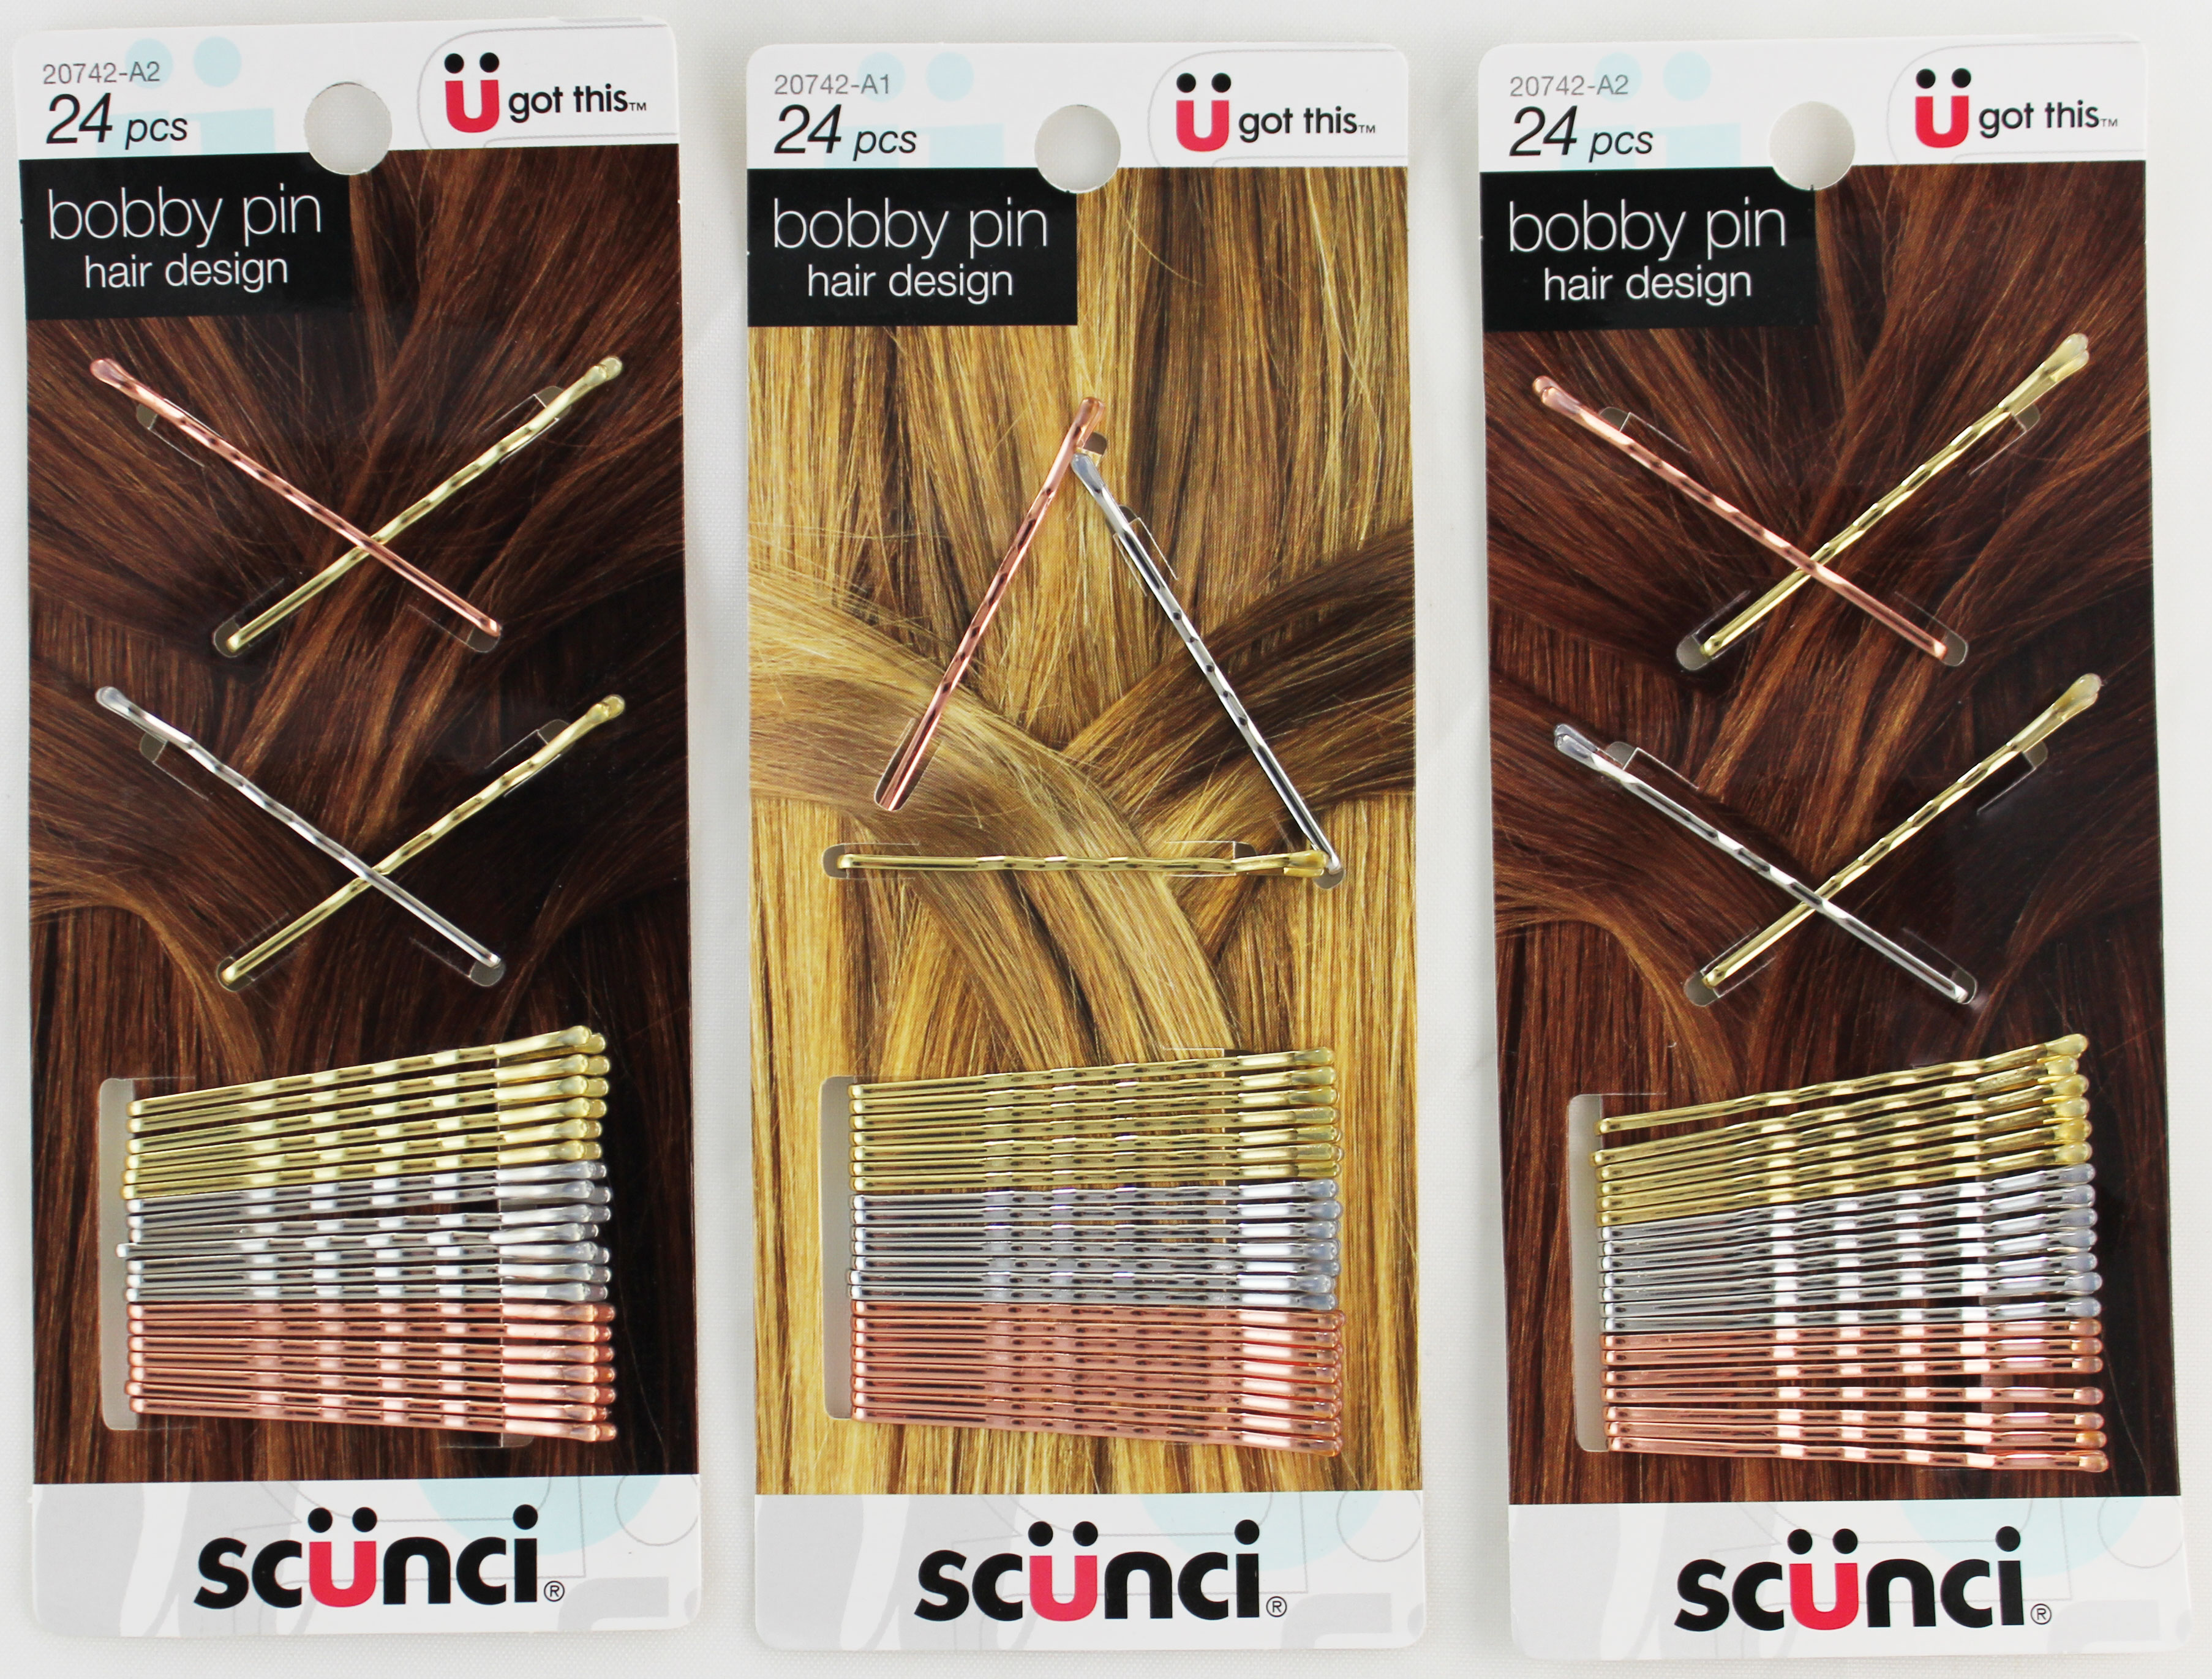 Scunci Bobby Pin Hair Design Clips - 1ct